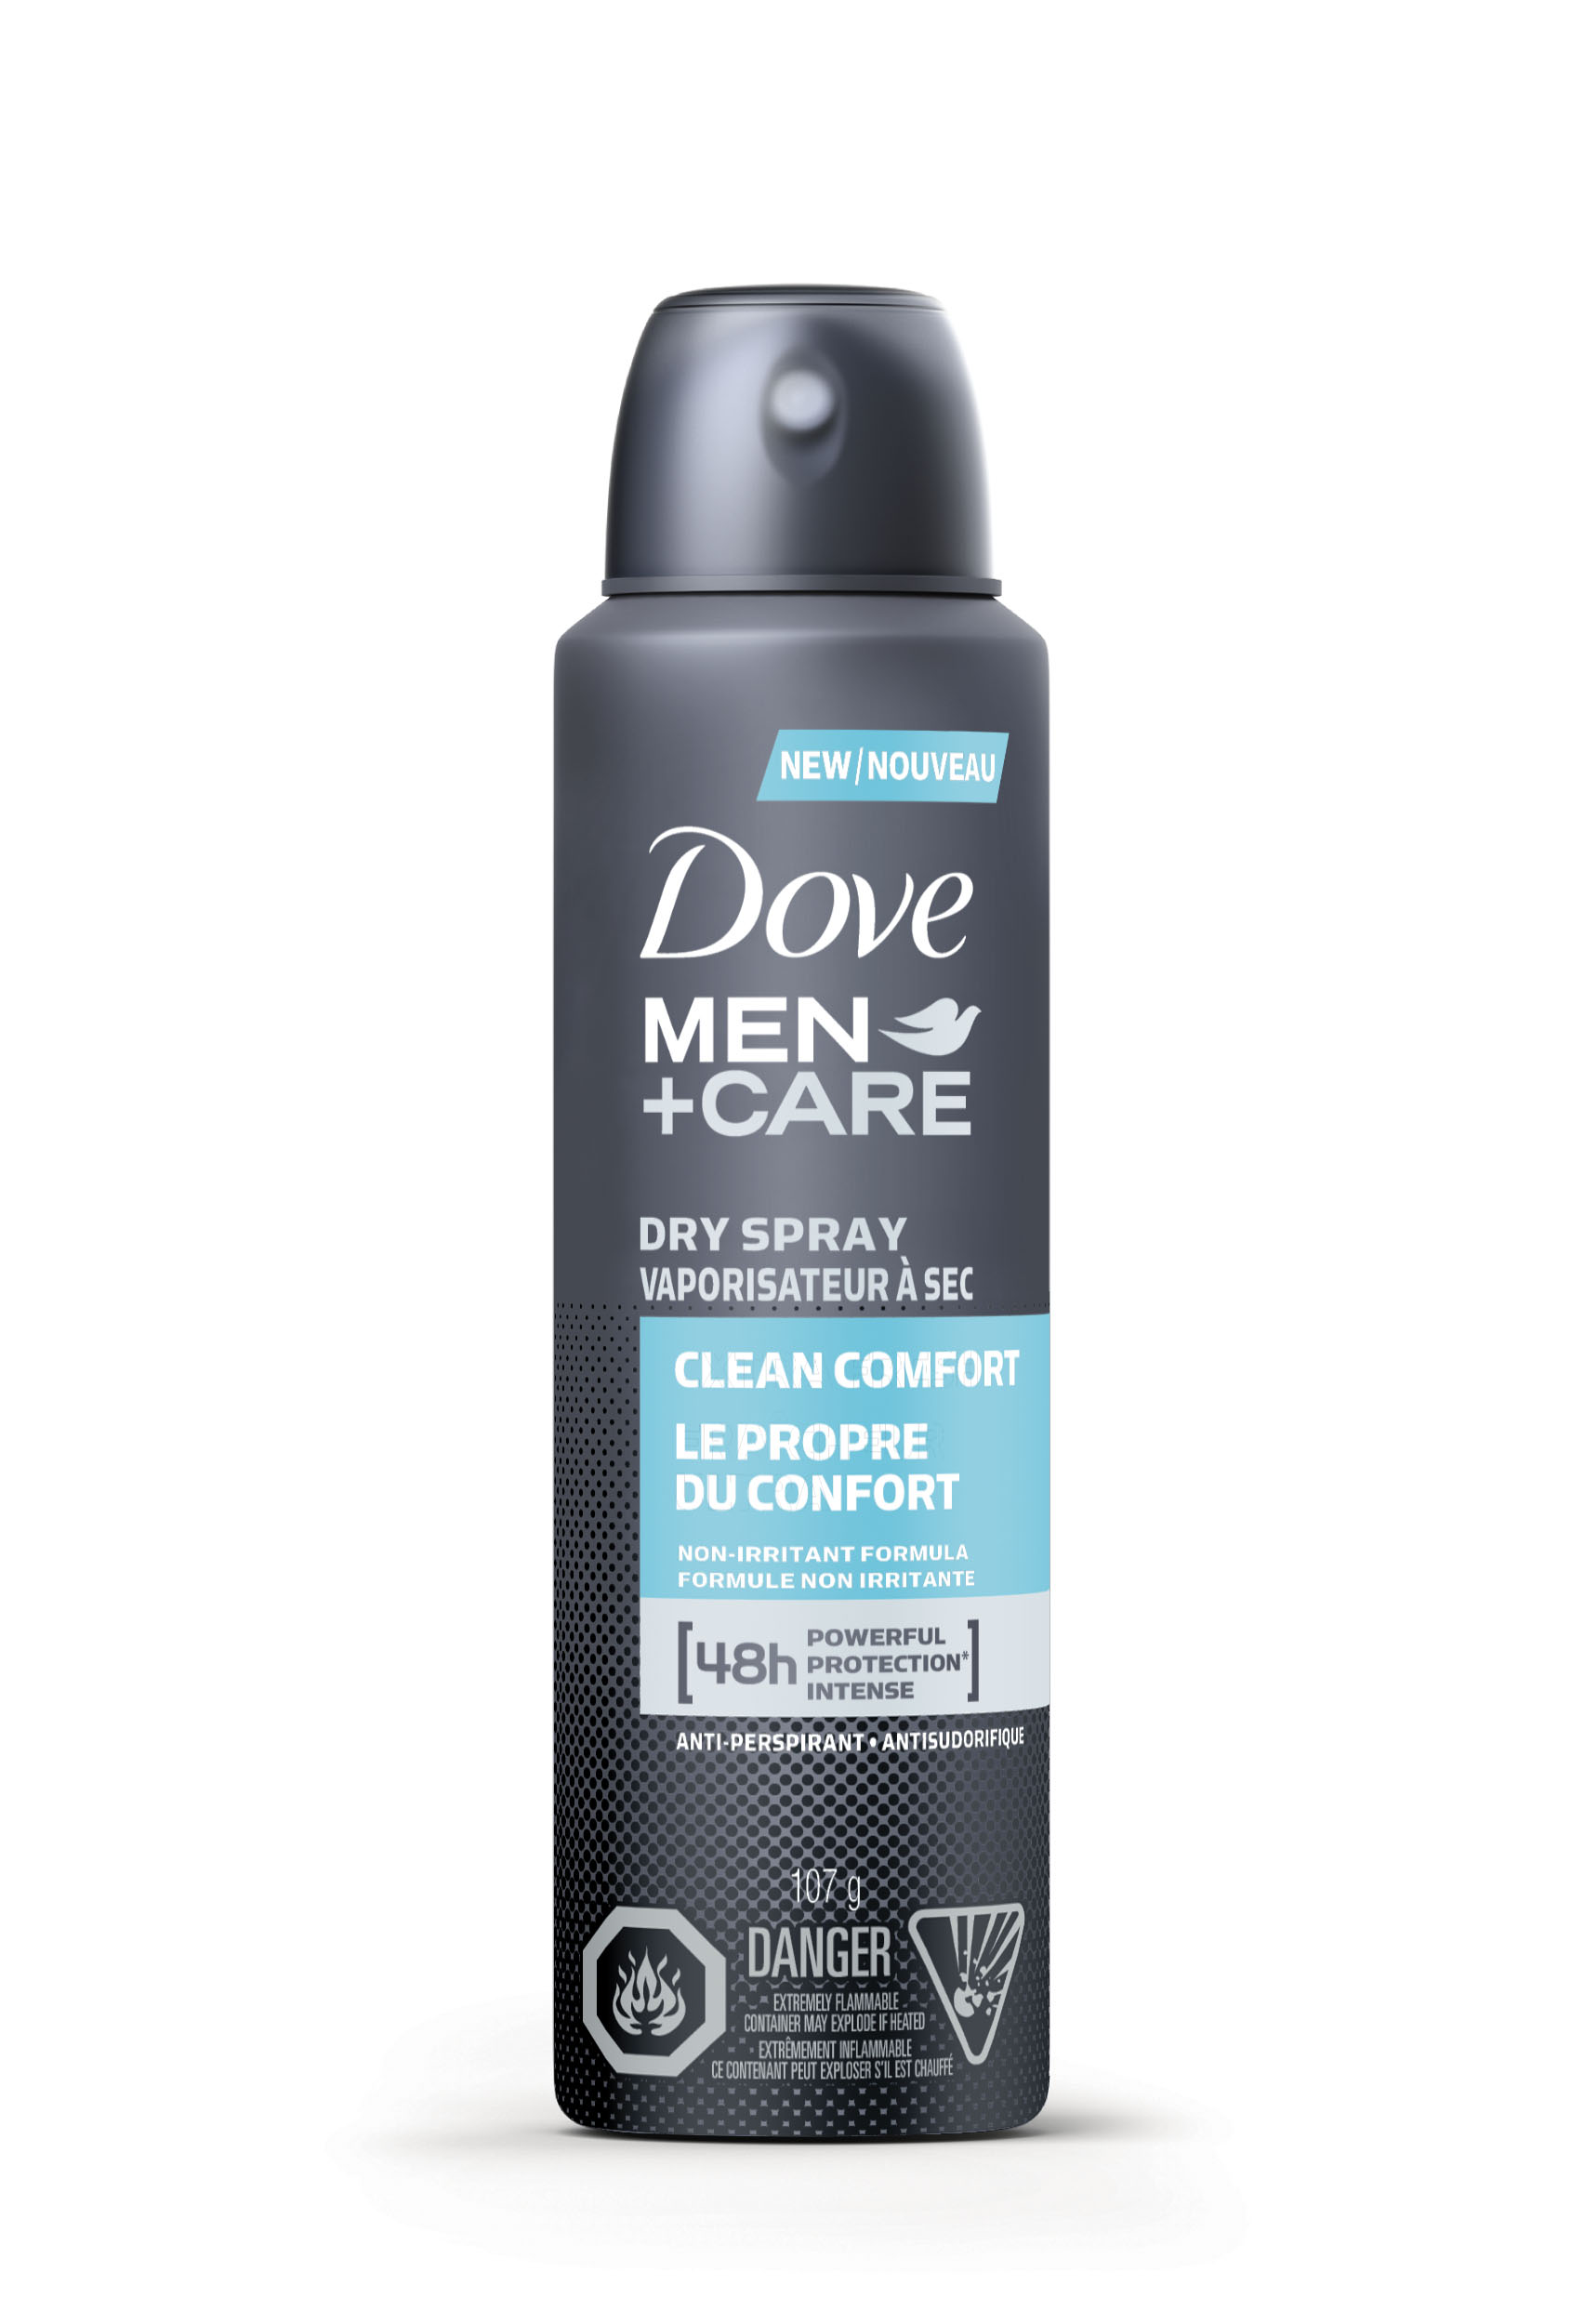 Dove Men + Care Clean Comfort Dry Spray Antiperspirant, $5.99. Available at drugstores.  Never stain your favourite shirt again - this spray goes on clear, dries instantly and stands up to 48 hours.